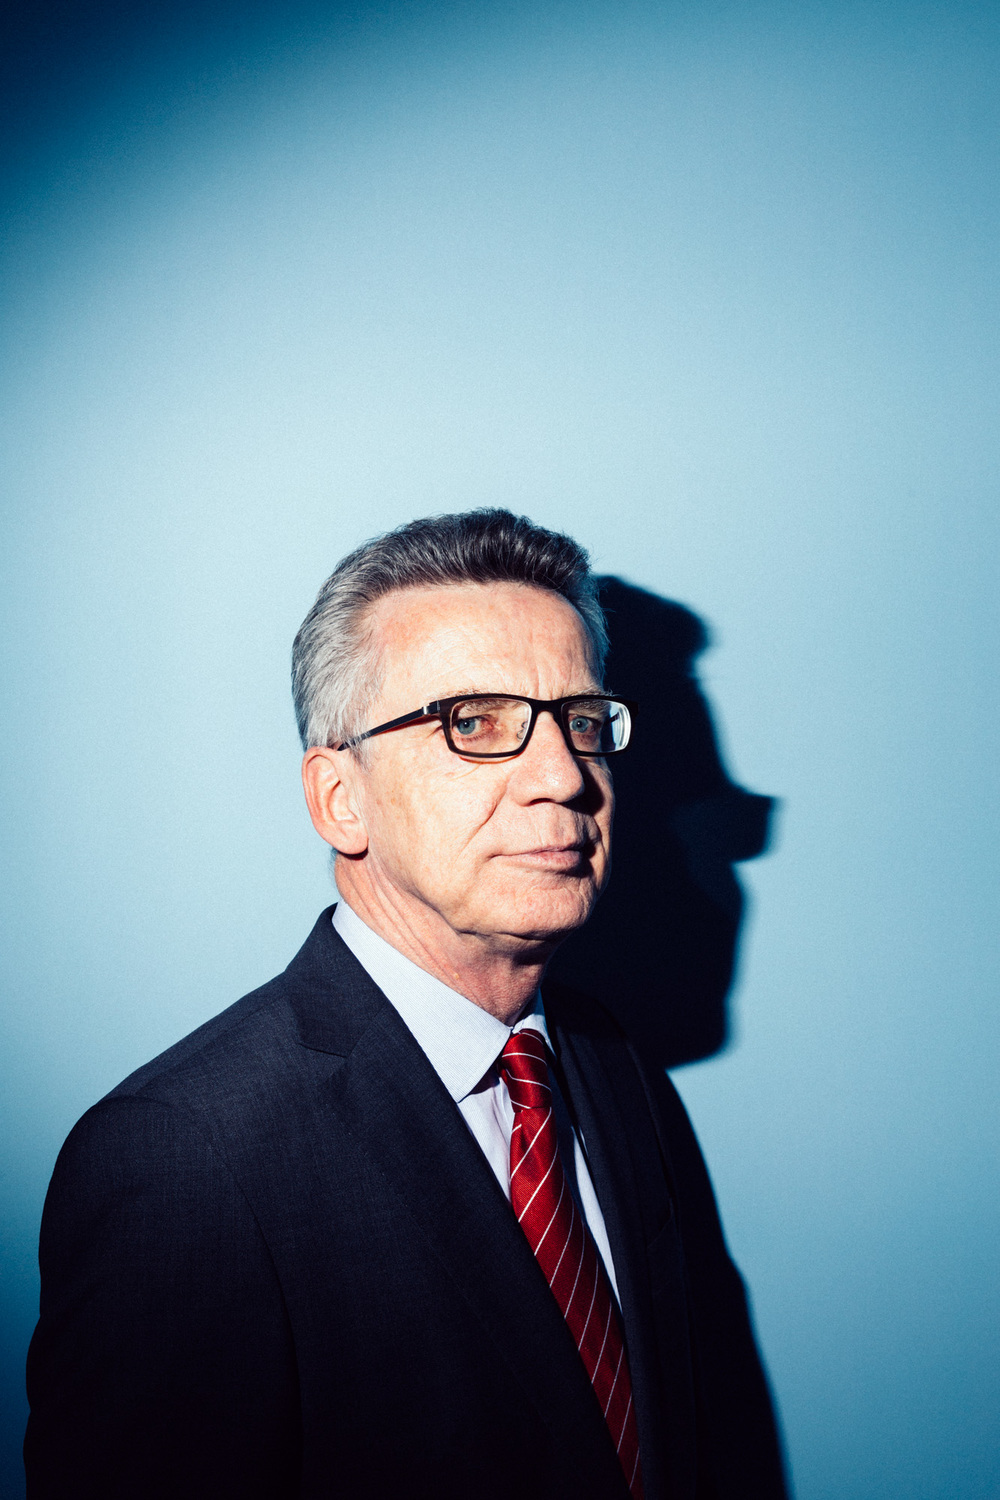 Innenmininster Thomas de Maizière für Focus, Berlin 2016